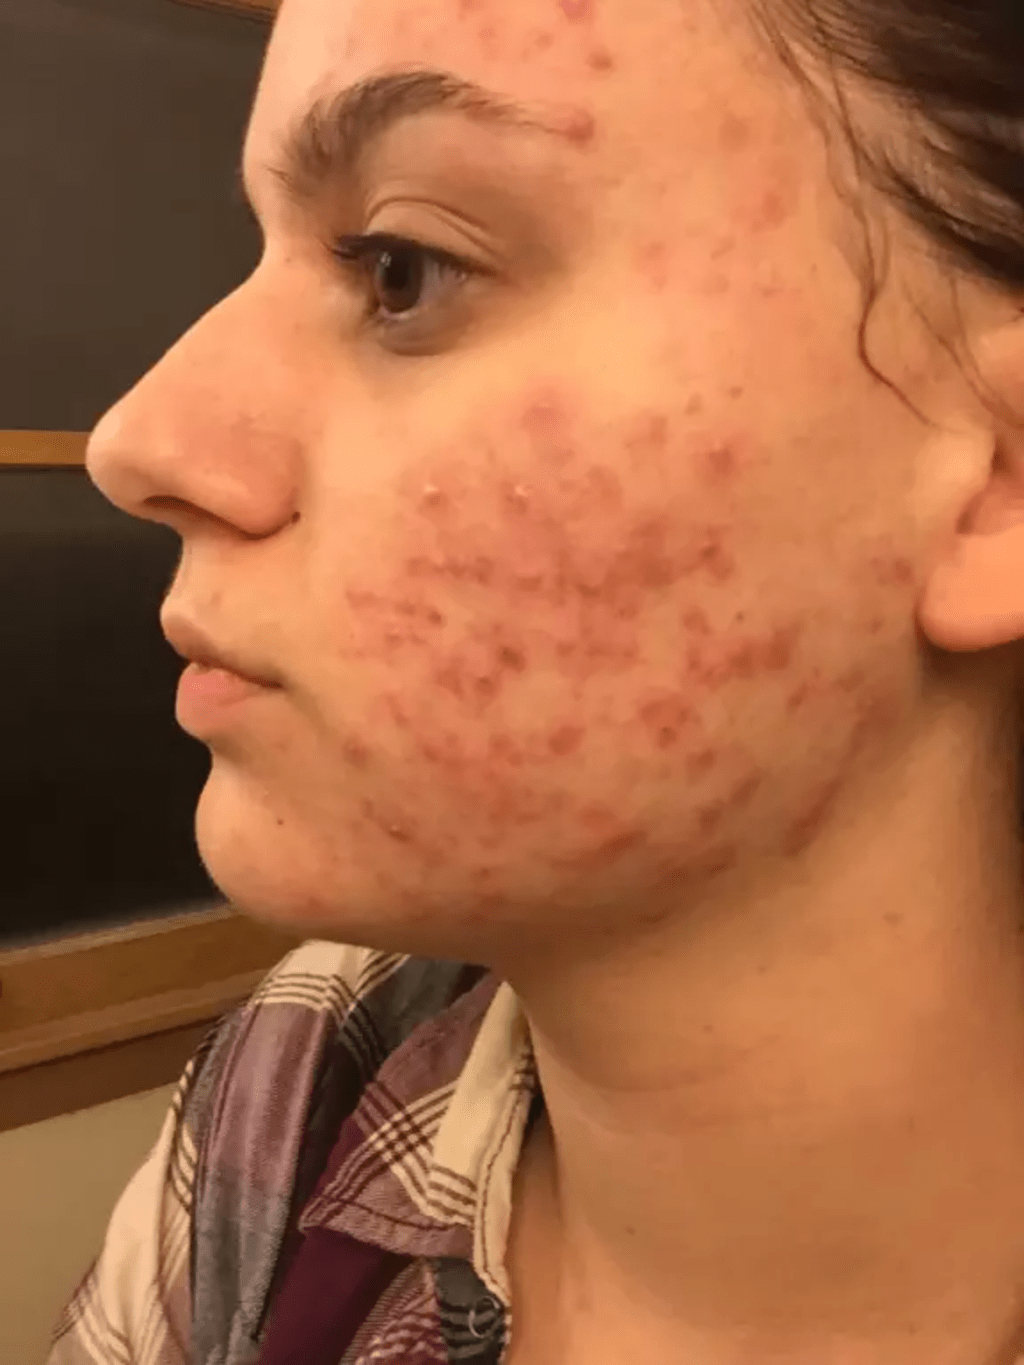 5 Things I Ve Learned From Living With Cystic Acne